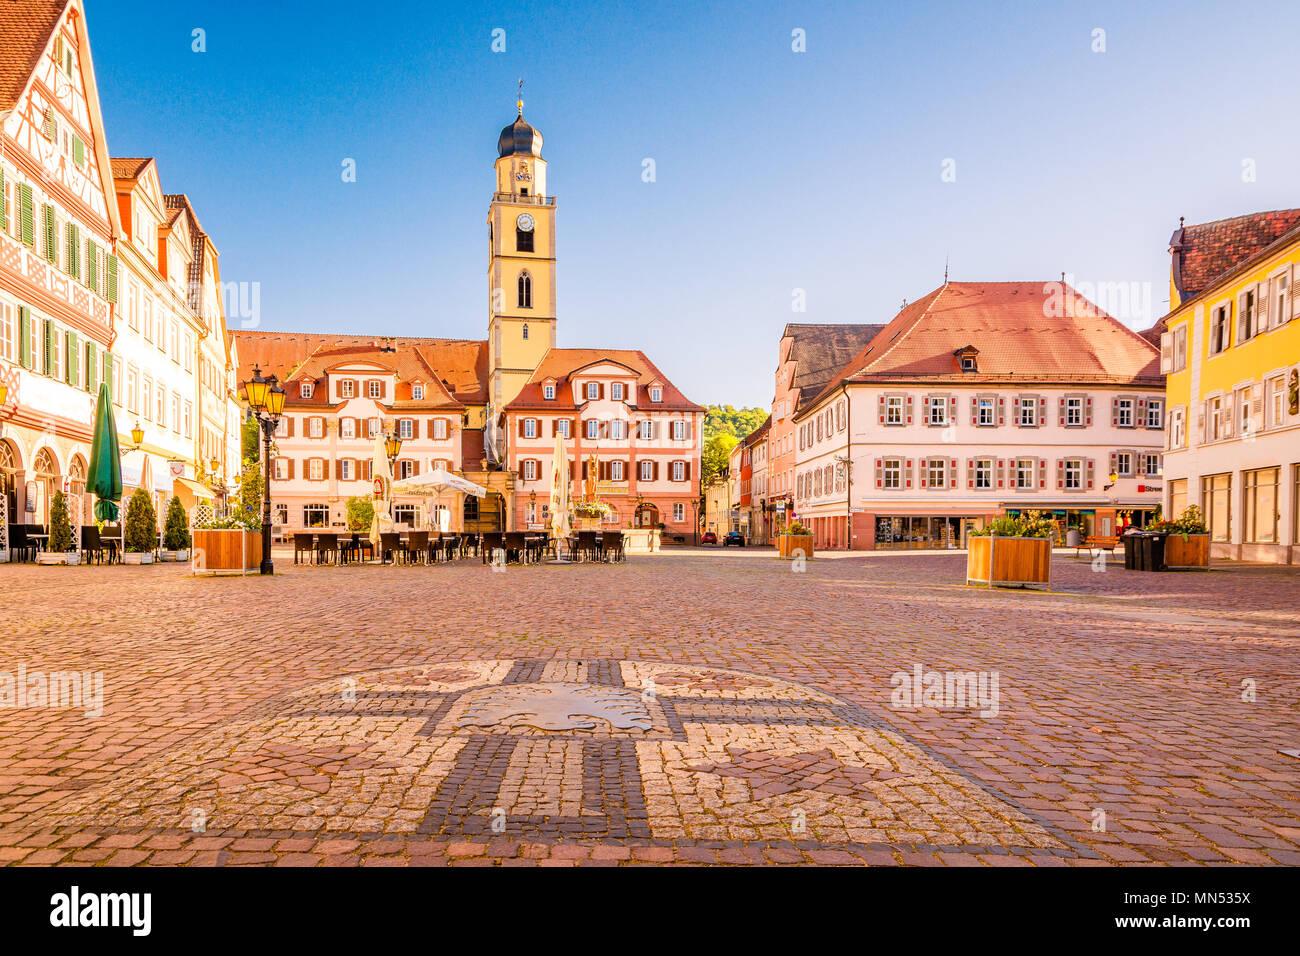 Beautiful scenic view of the old town in Bad Mergentheim - part of the Romantic Road, Bavaria, Germany - Stock Image